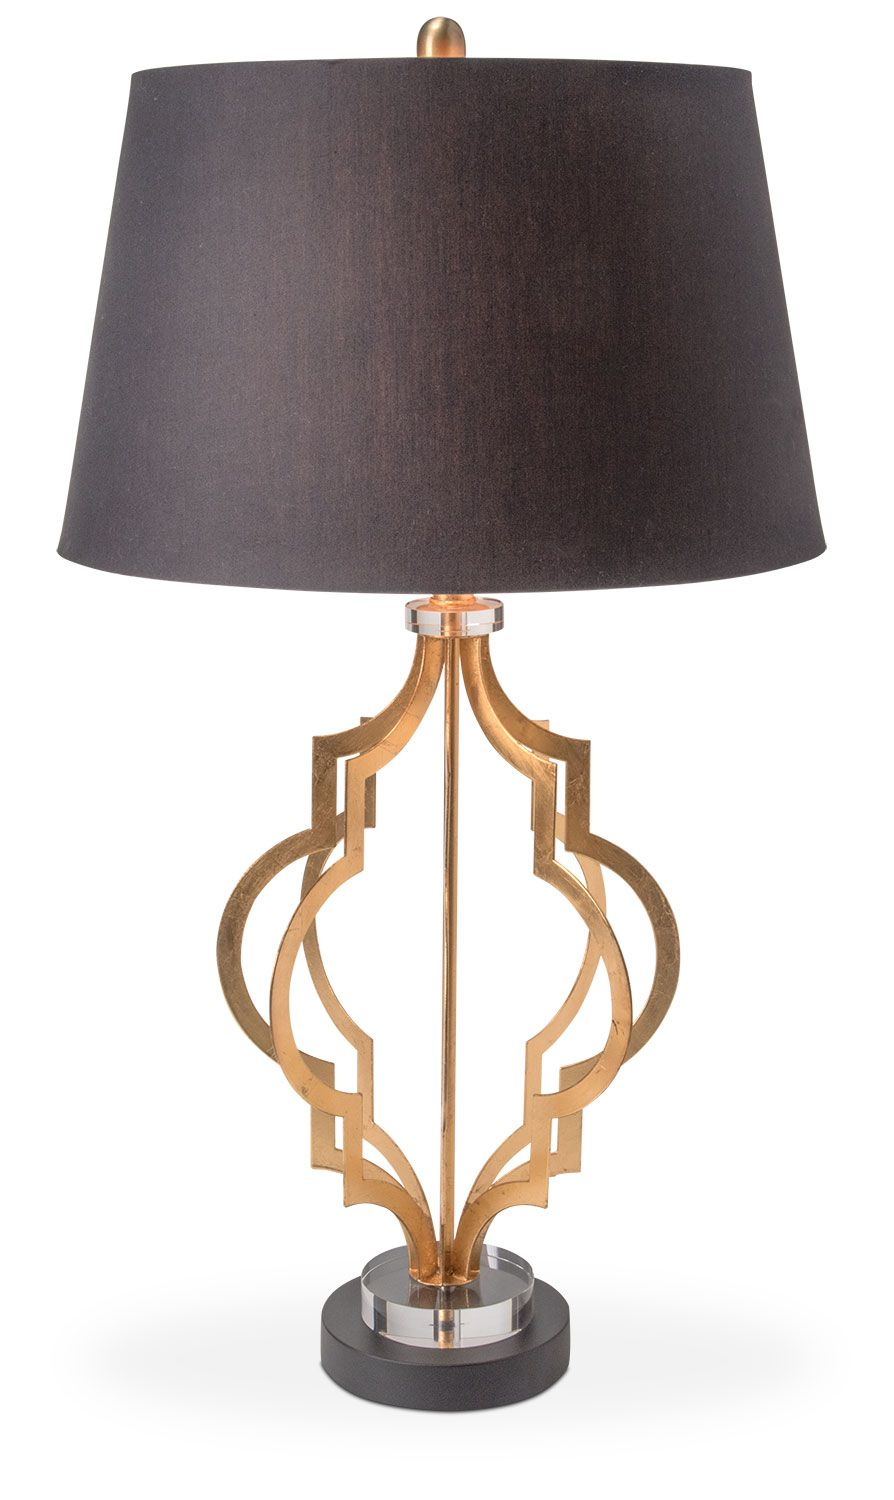 Value City Furniture Today Clara Table Lamp